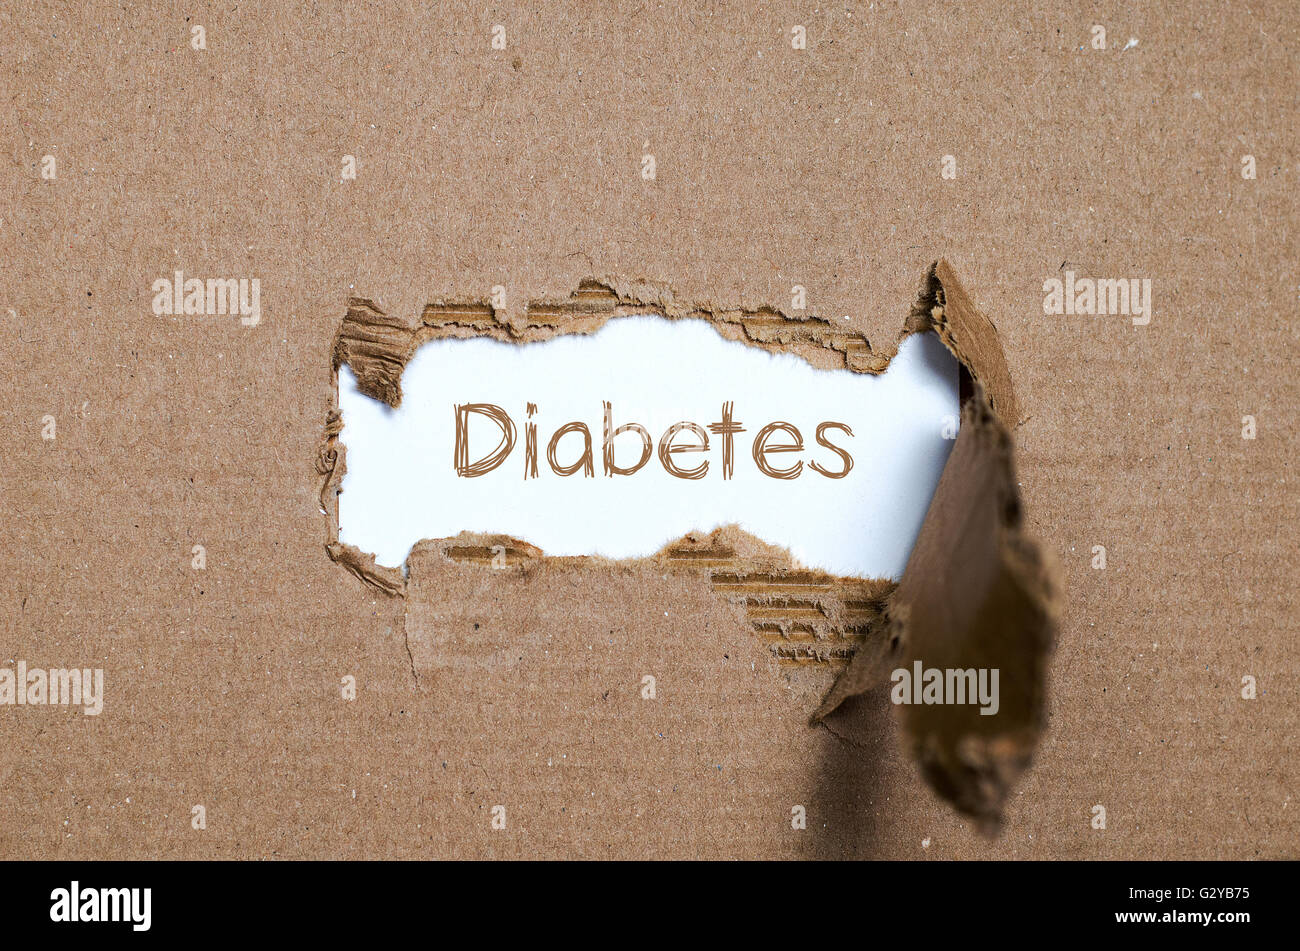 the word diabetes appearing behind torn paper stock photo royalty stock photo the word diabetes appearing behind torn paper